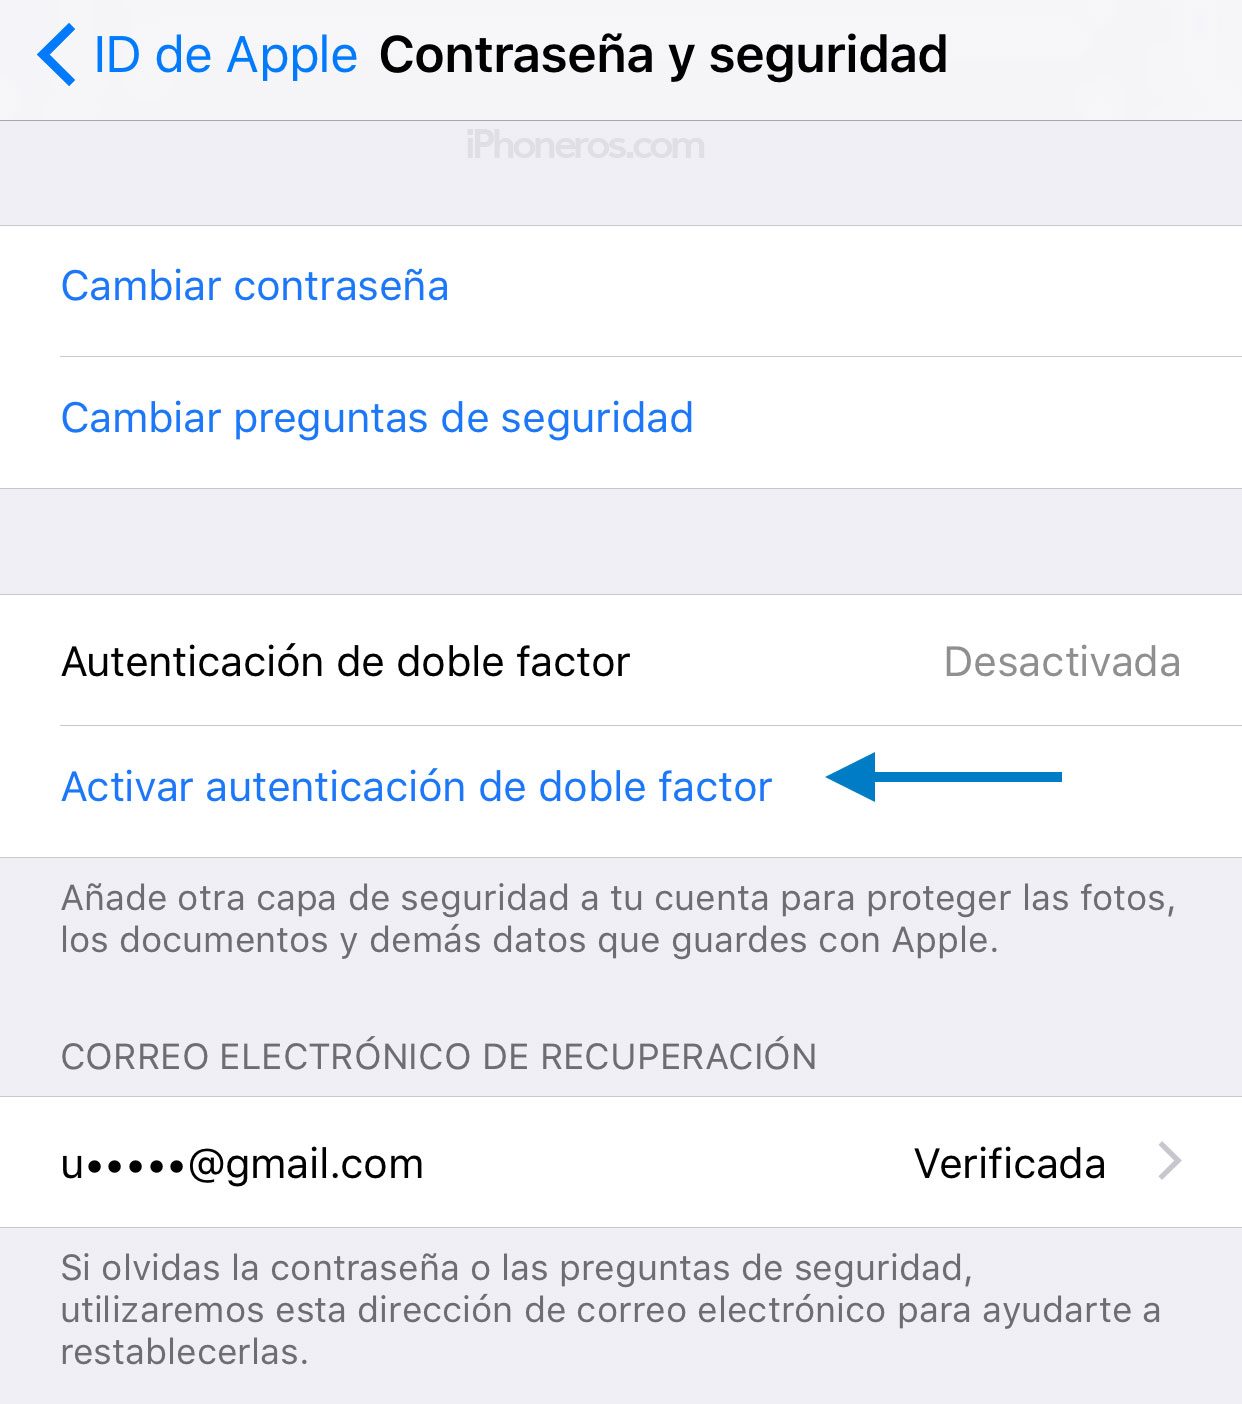 Activar autenticación de doble factor